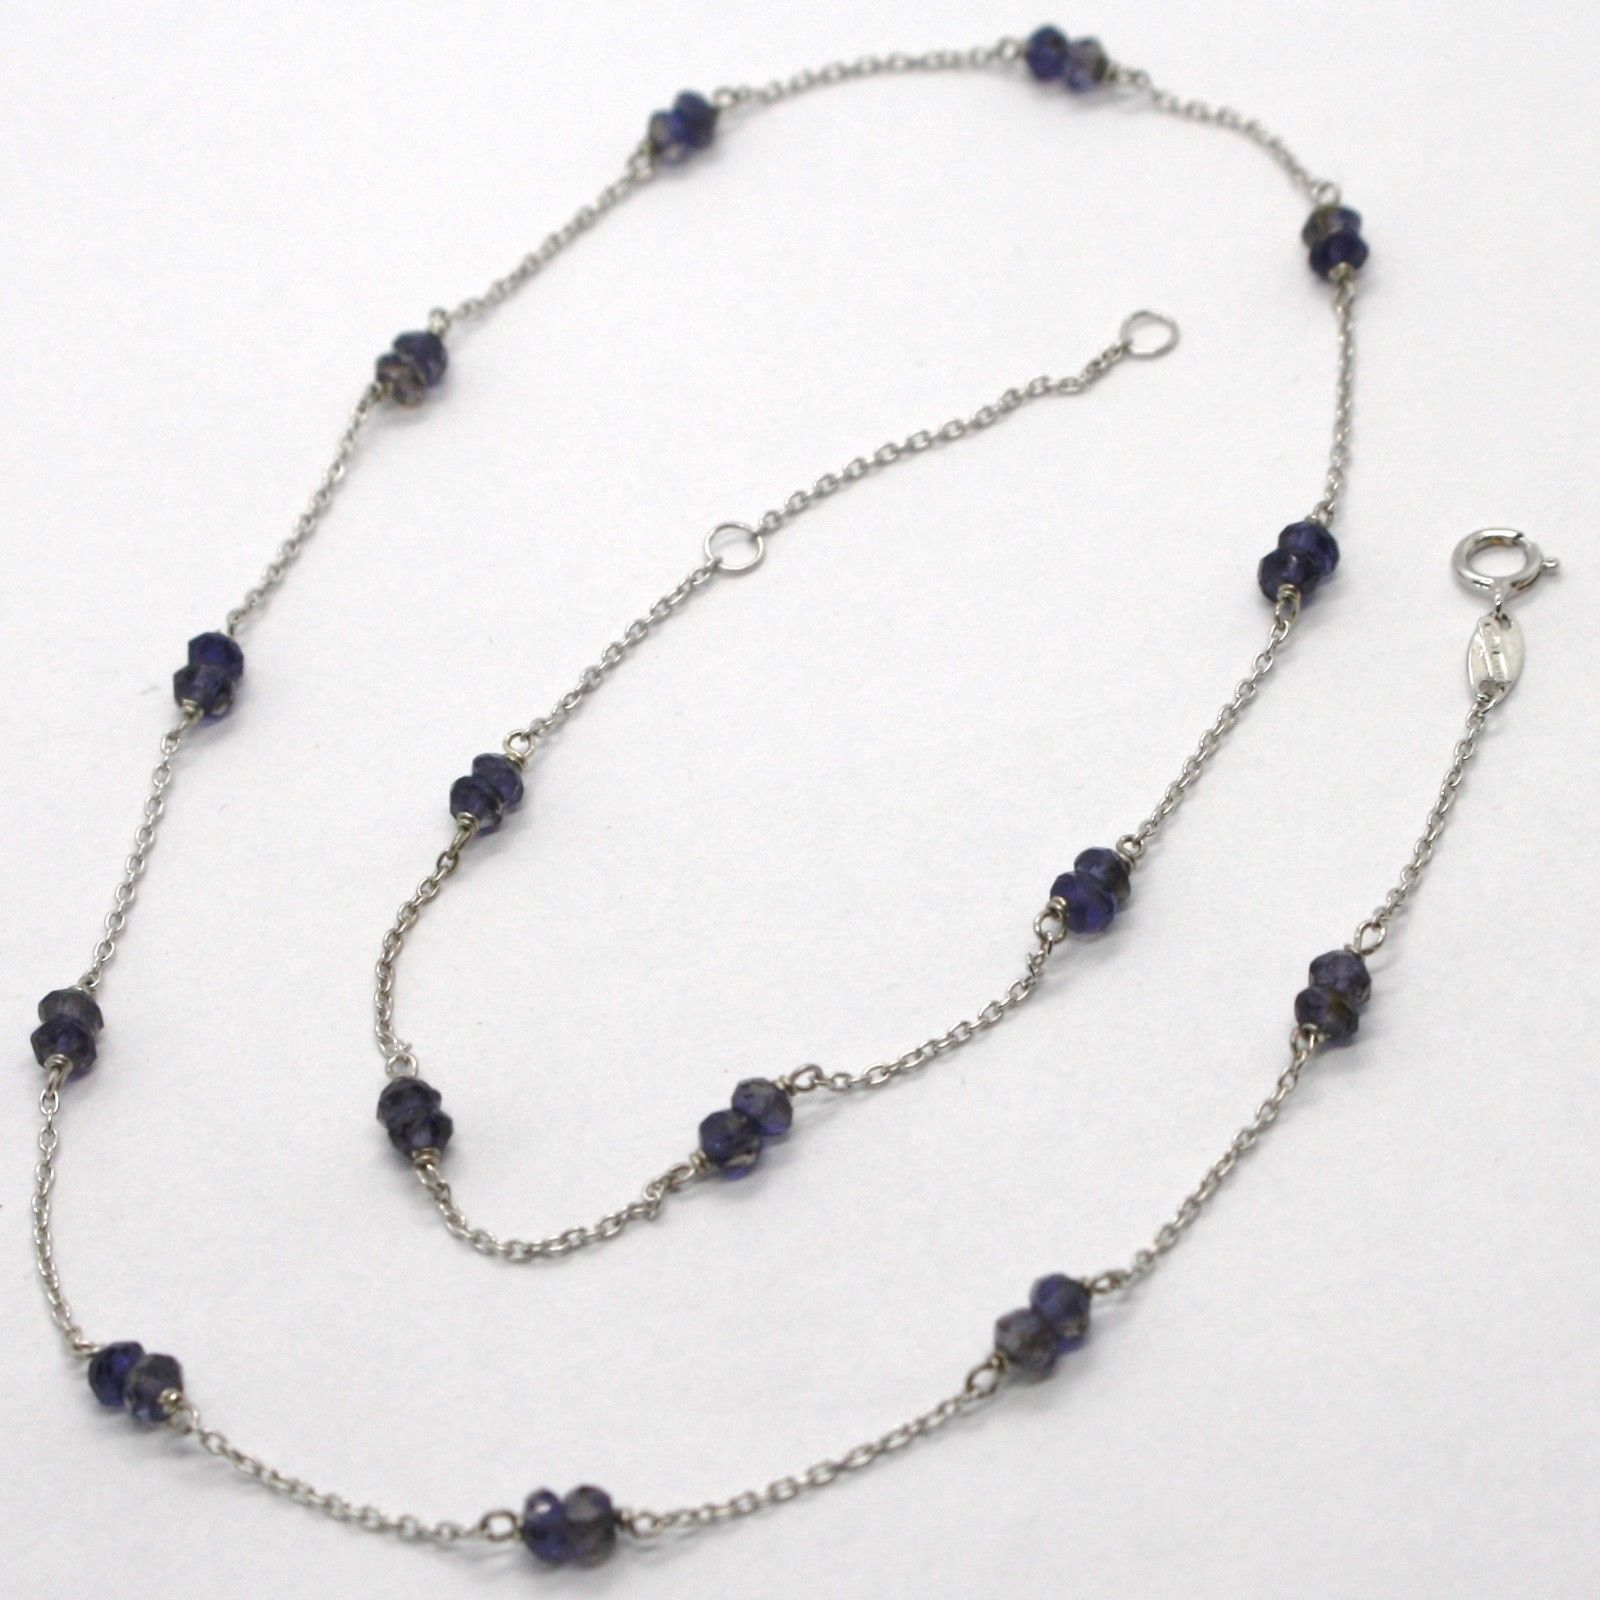 18K WHITE GOLD NECKLACE ROLO ROUND CHAIN ALTERNATE WITH FACETED BLUE IOLITE